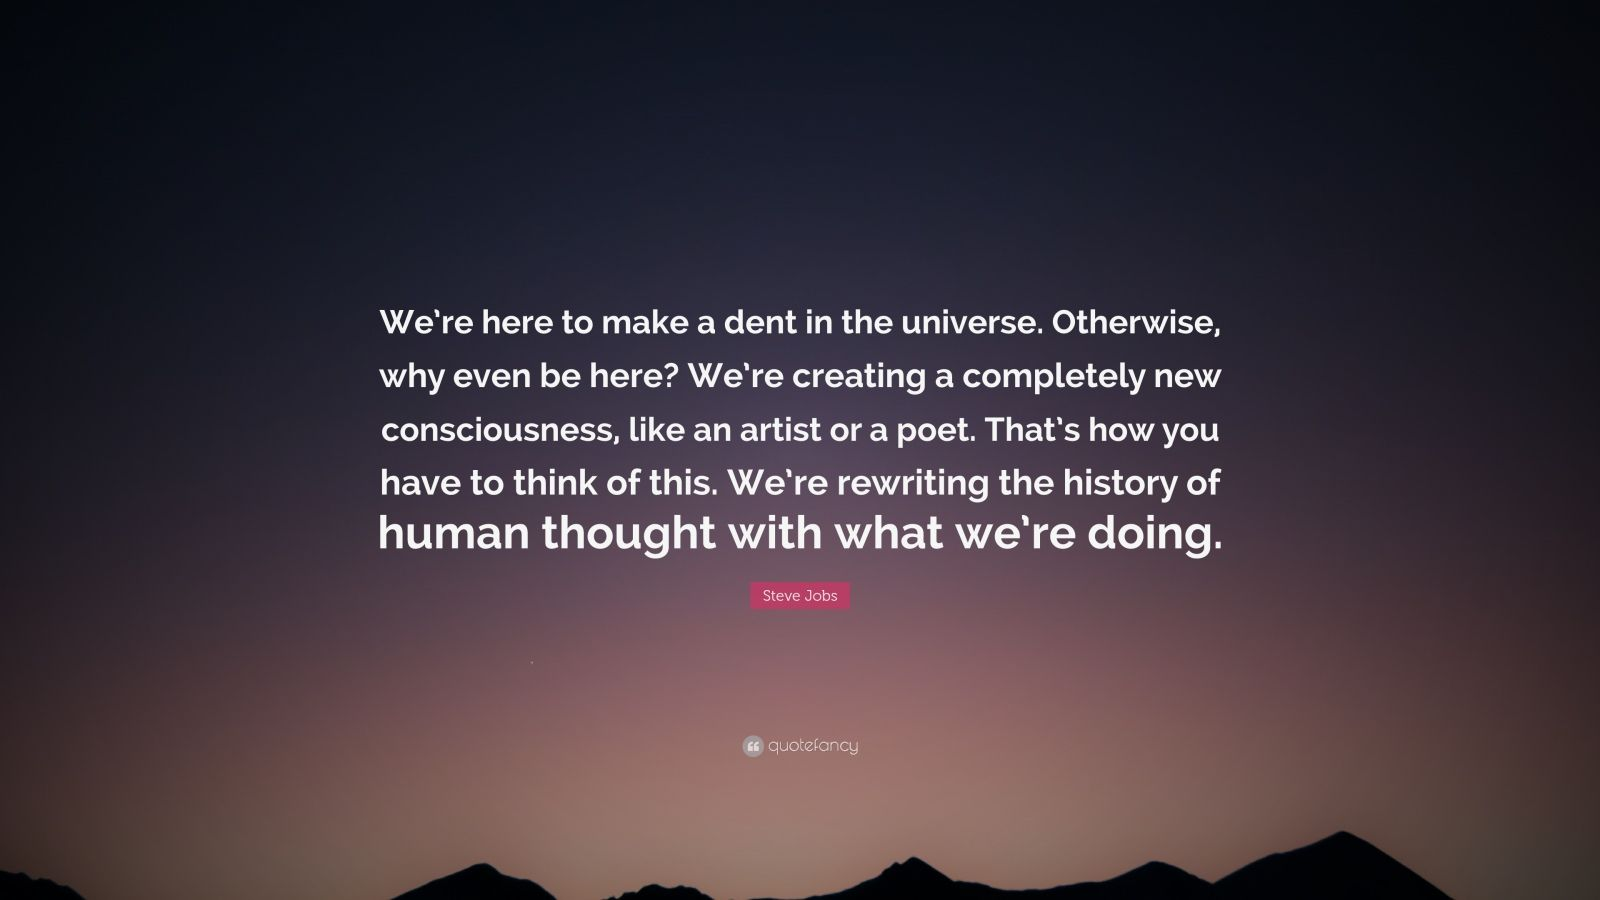 "Steve Jobs Quote: ""We're here to make a dent in the universe. Otherwise, why even be here? We're creating a completely new consciousness, like an artist or a poet. That's how you have to think of this. We're rewriting the history of human thought with what we're doing."""